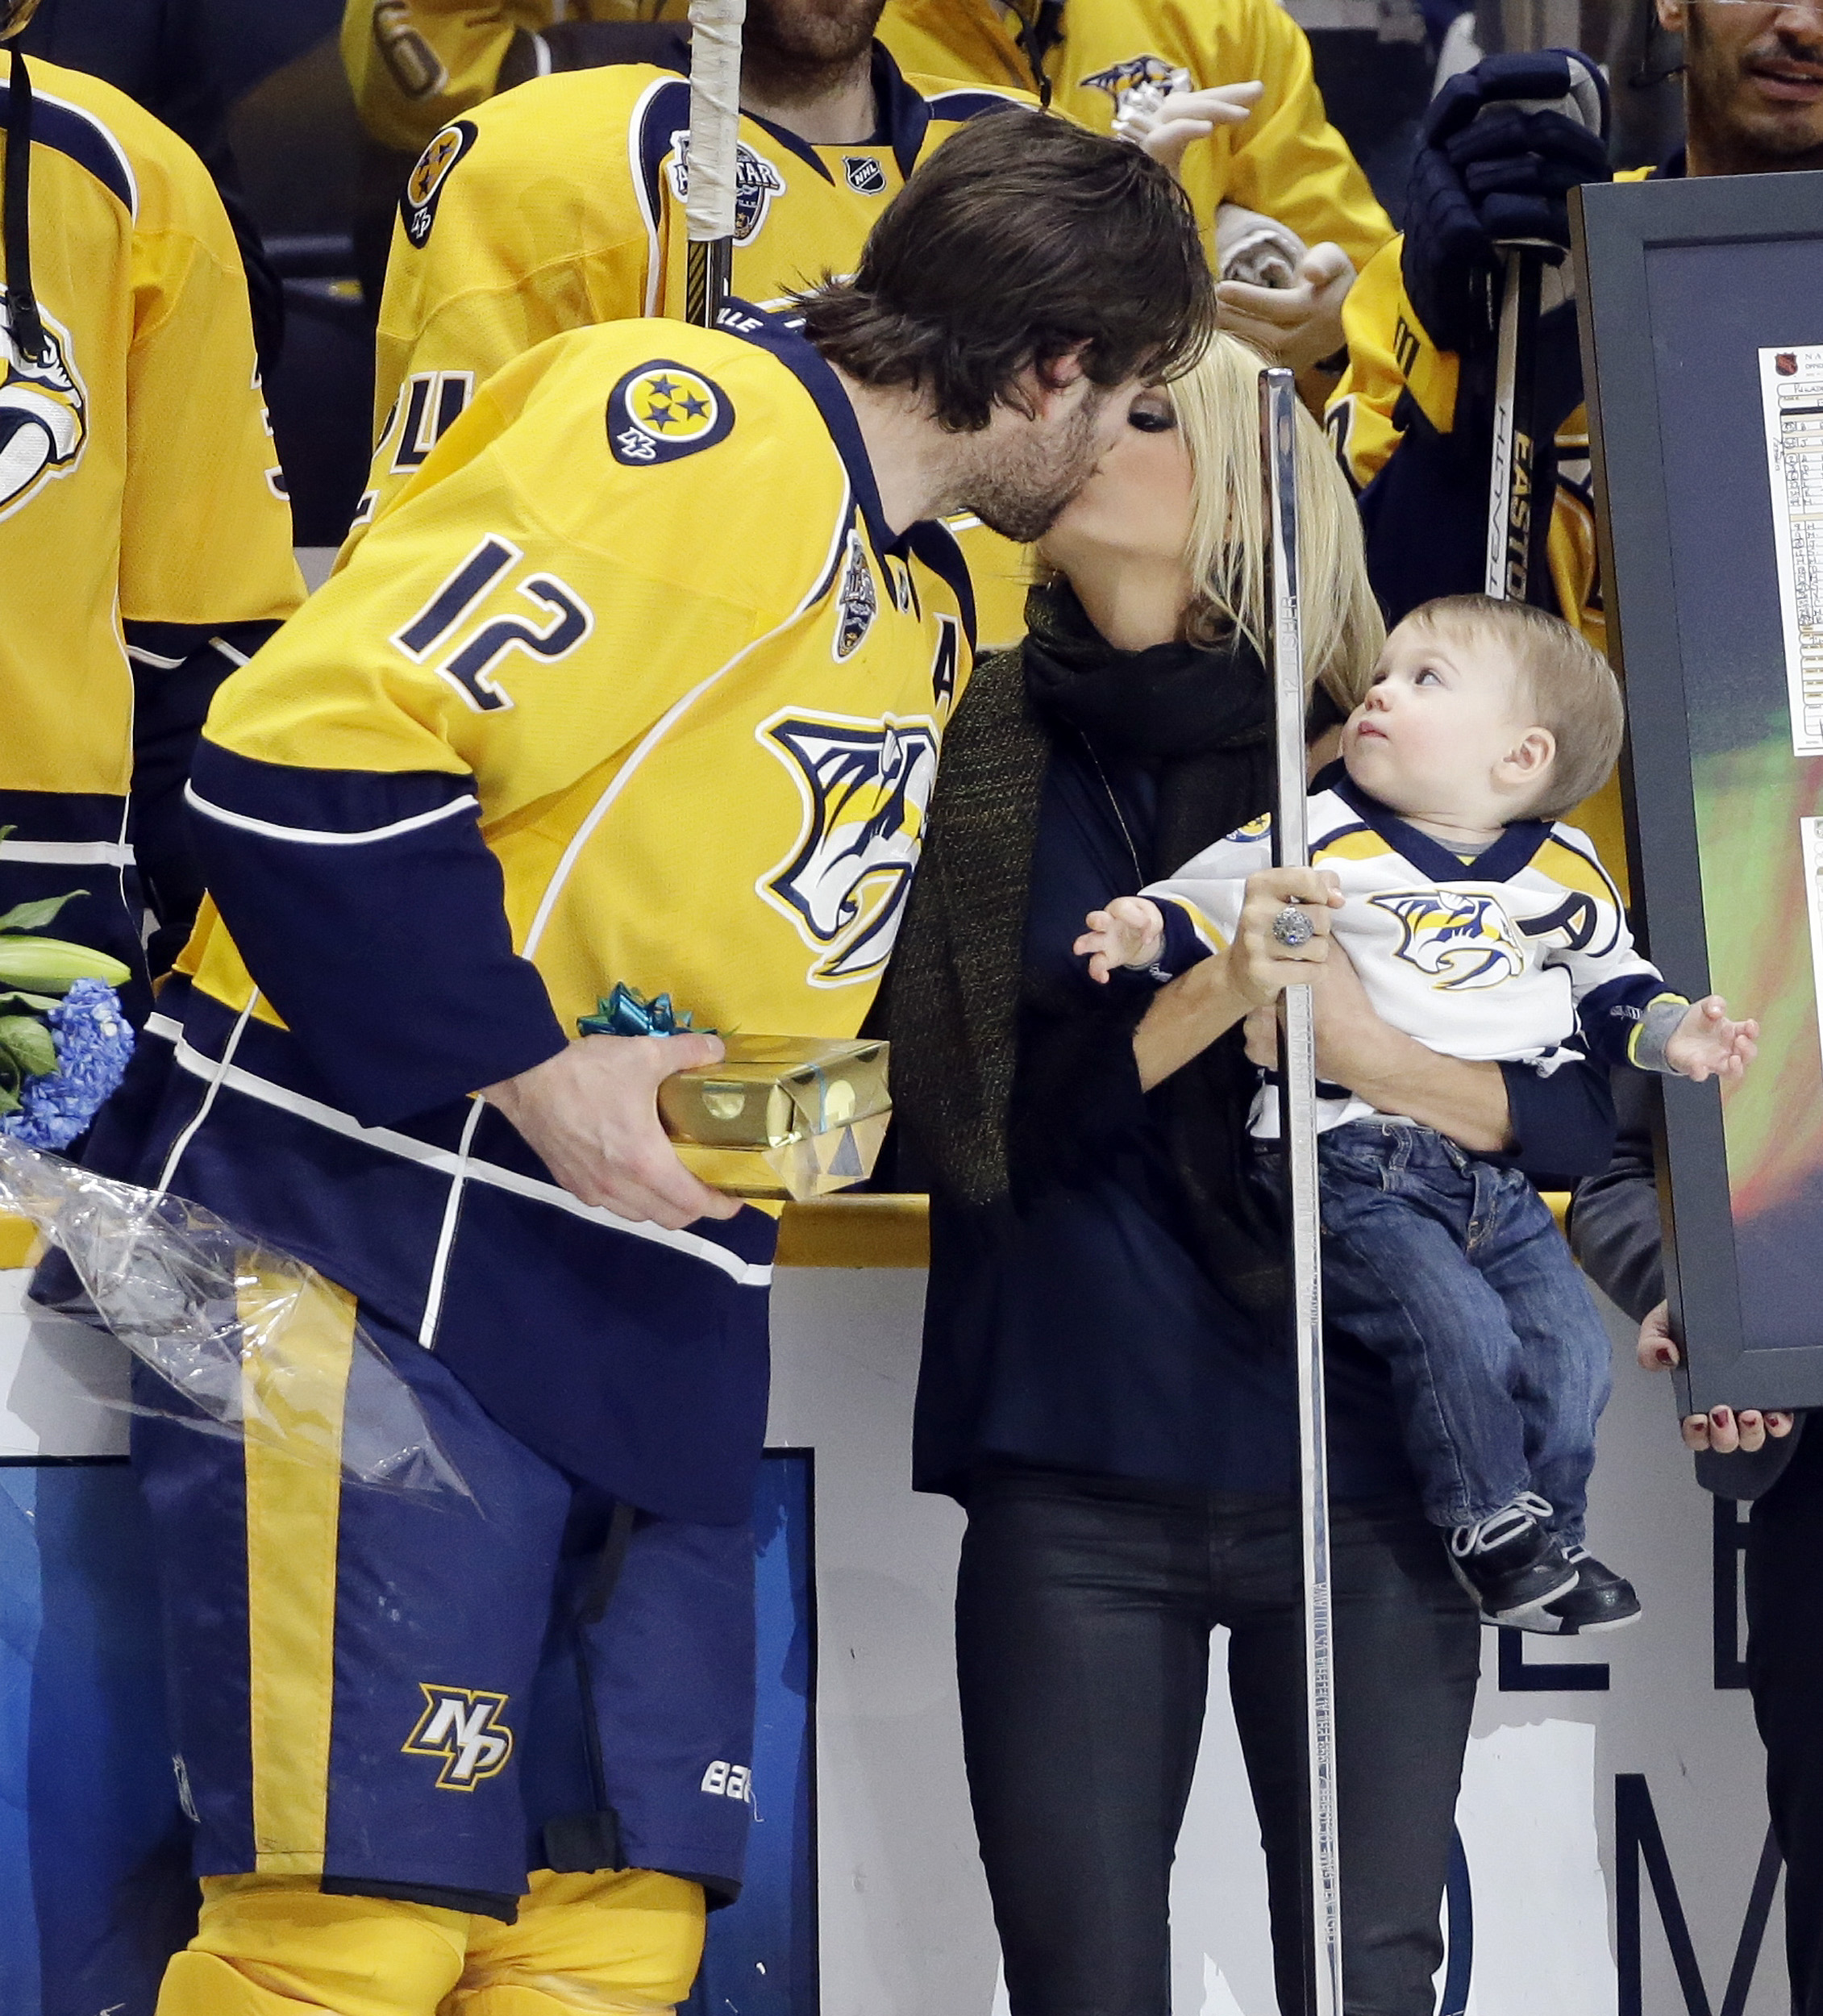 Nashville Predators forward Mike Fisher kisses his wife, singer Carrie Underwood, as Fisher is honored for his 1,000th NHL hockey game prior to playing against the Los Angeles Kings Monday, March 21, 2016, in Nashville, Tenn. Watching is their son, Isaiah